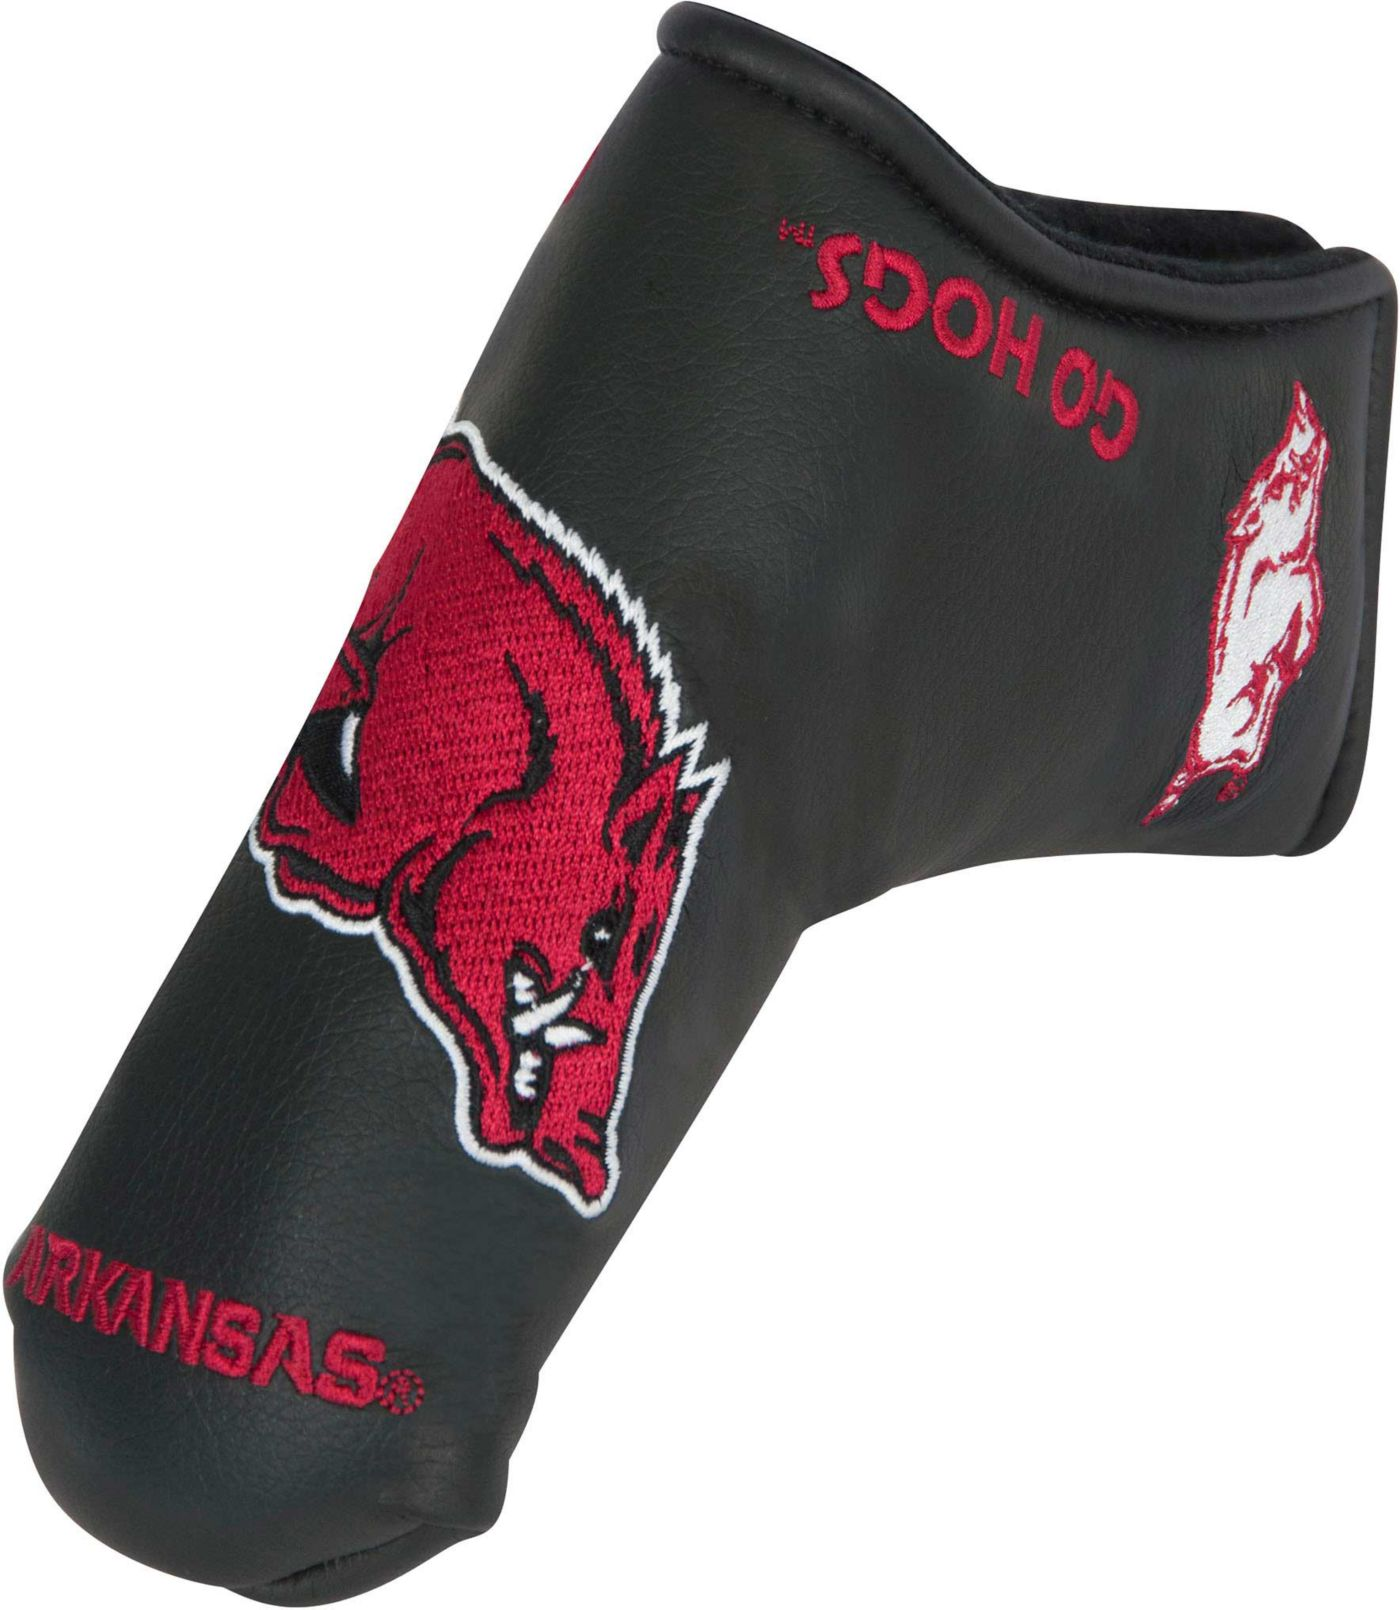 Team Effort Arkansas Razorbacks Blade Putter Headcover